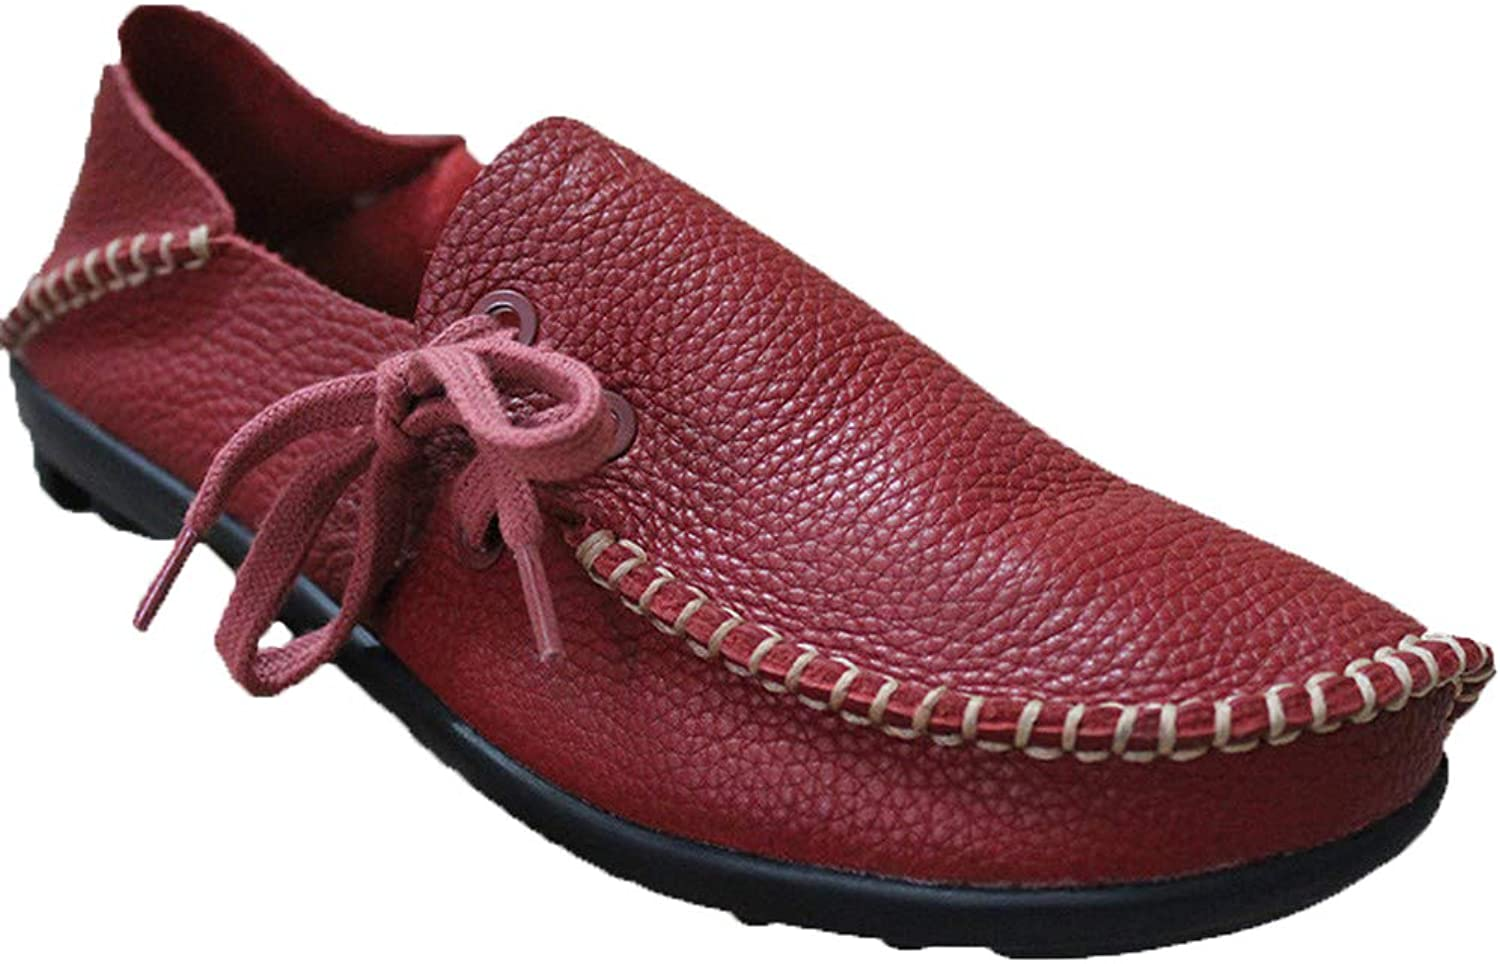 Pophight Hand Crafted Womens Leather Cowhide Casual Lace up Flat Driving Loafers Red